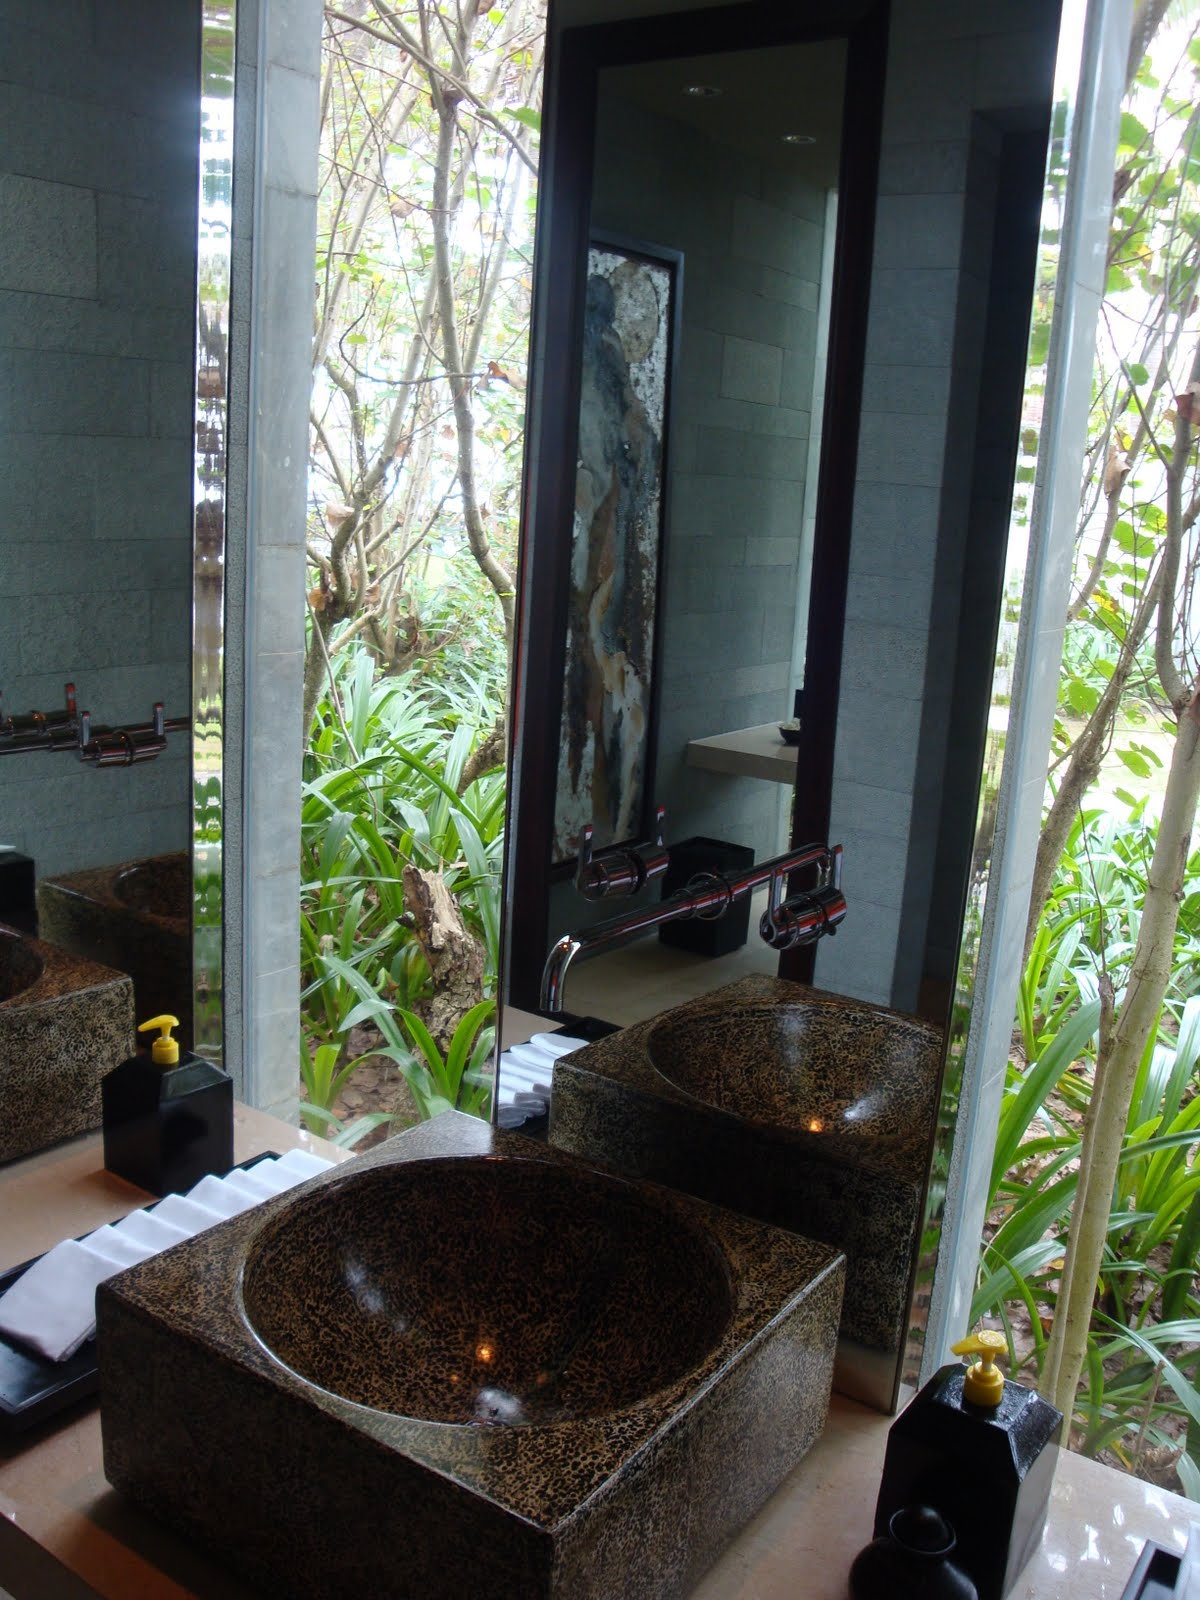 Desperate to use the bathroom - Check Out This Unbelievable Bathroom Almost Makes You Desperate To Powder Your Nose Please Note The Extensive Use Of Marble We Did Eventually Leave The